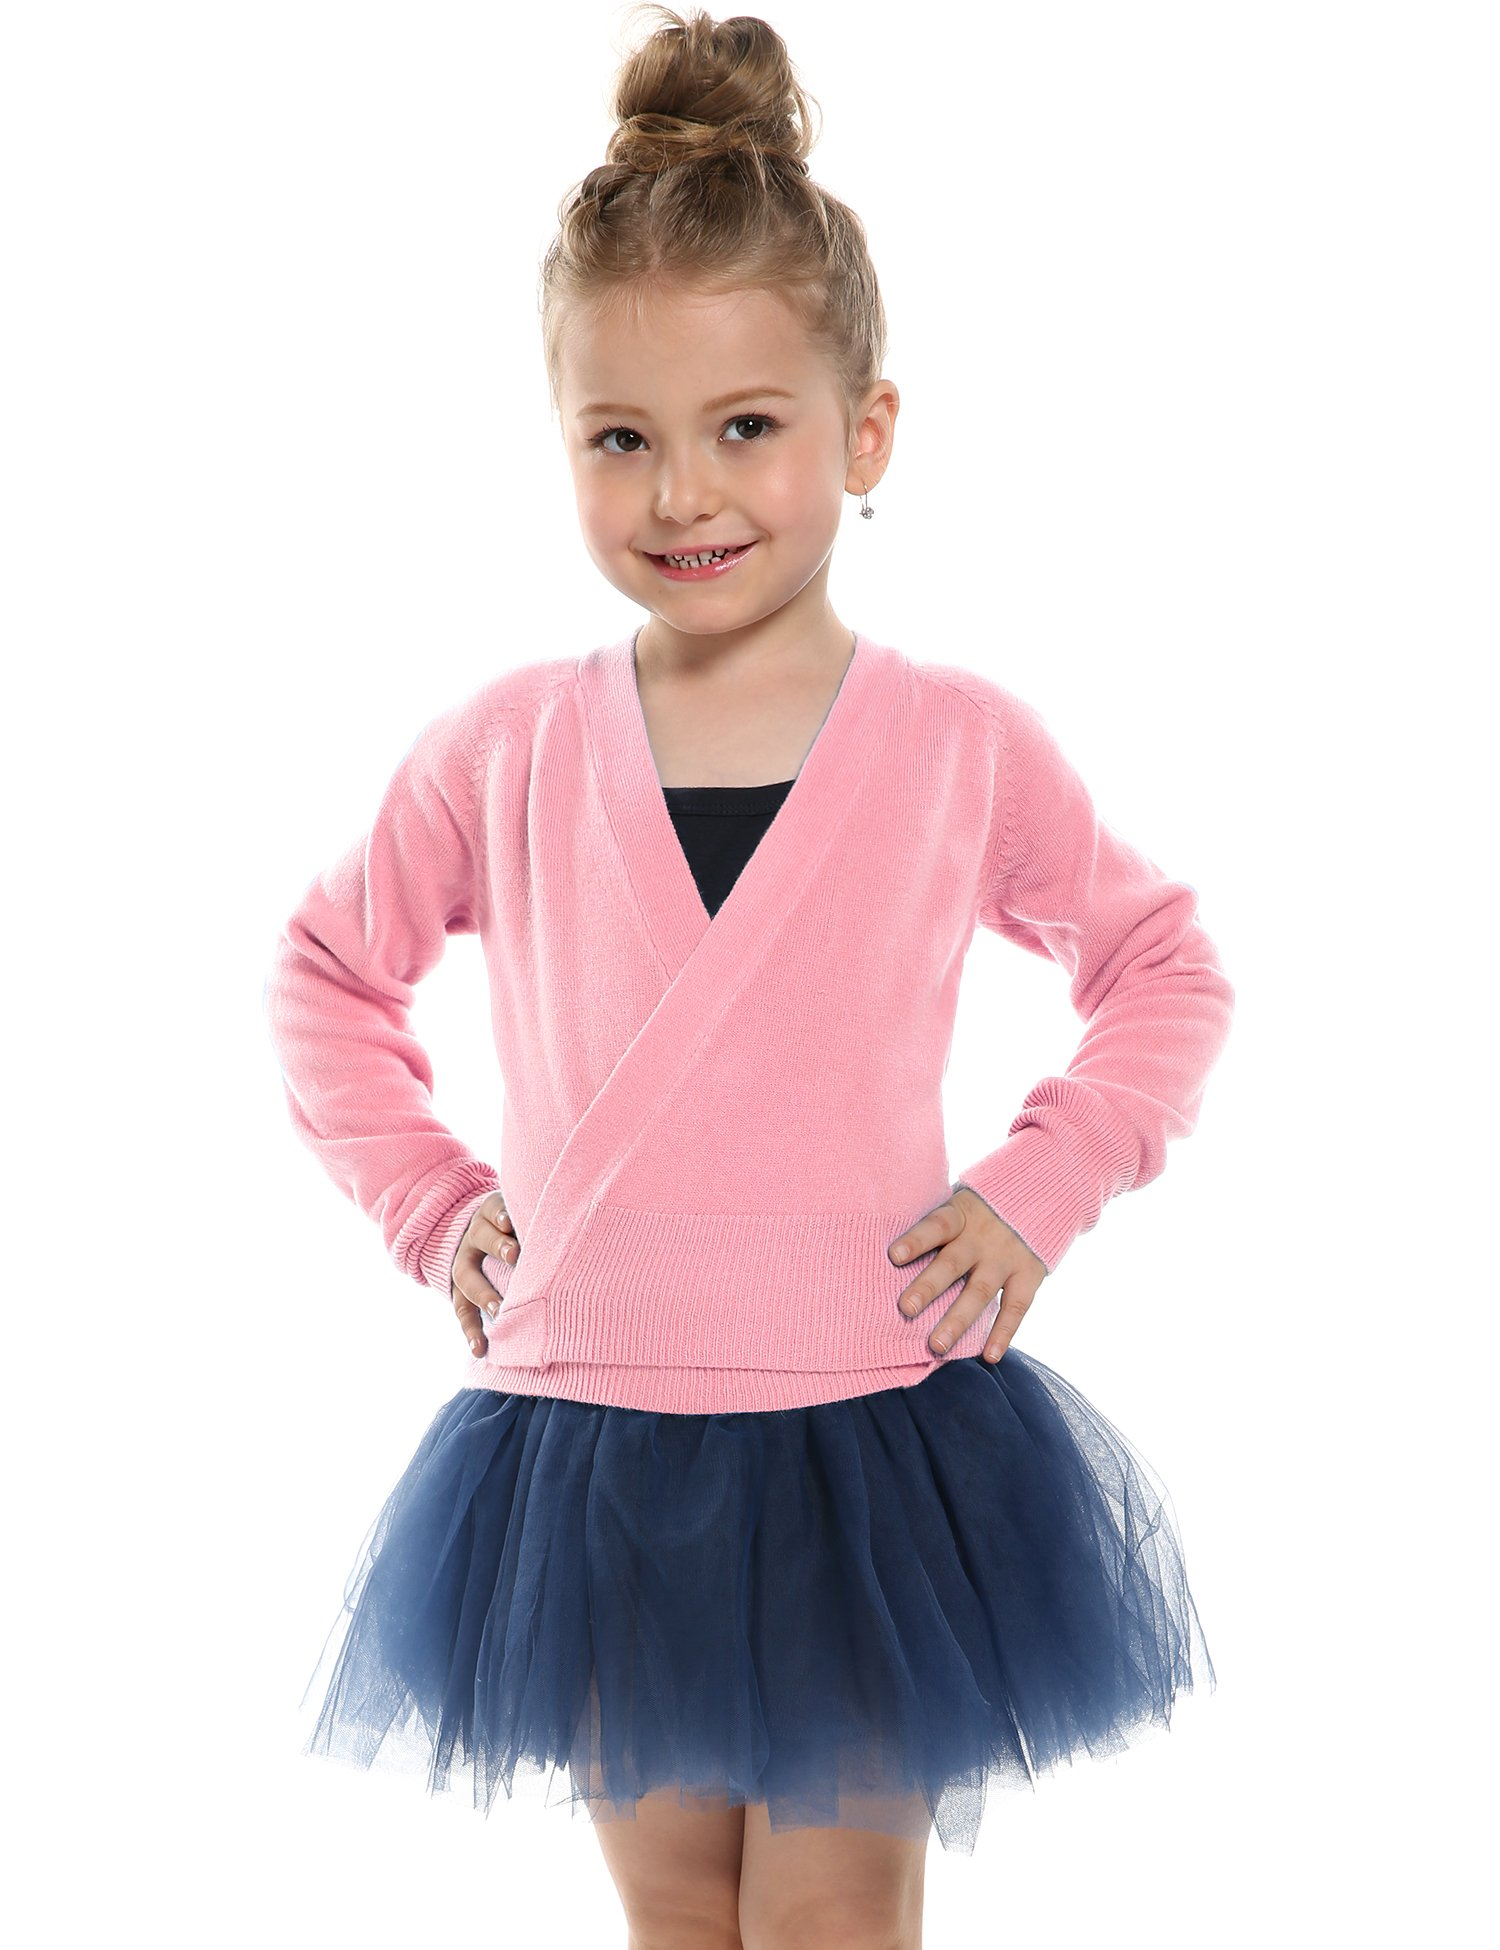 Kidsmian Little Girl's Classic Long Sleeve Knit Wrap Top Ballet Dance Cardigan (130(Age for 6-7Y), Ballet Pink)